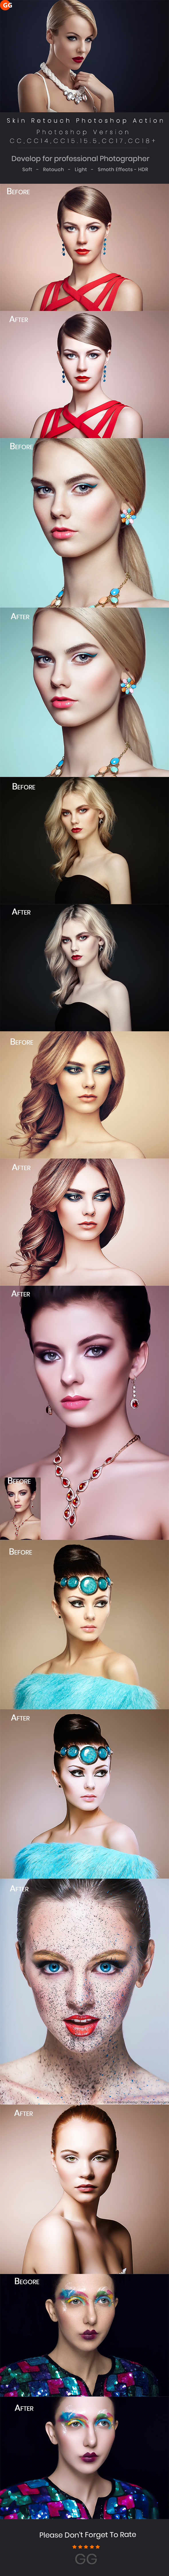 10 Skin Retouch Photoshop Action - Photo Effects Actions